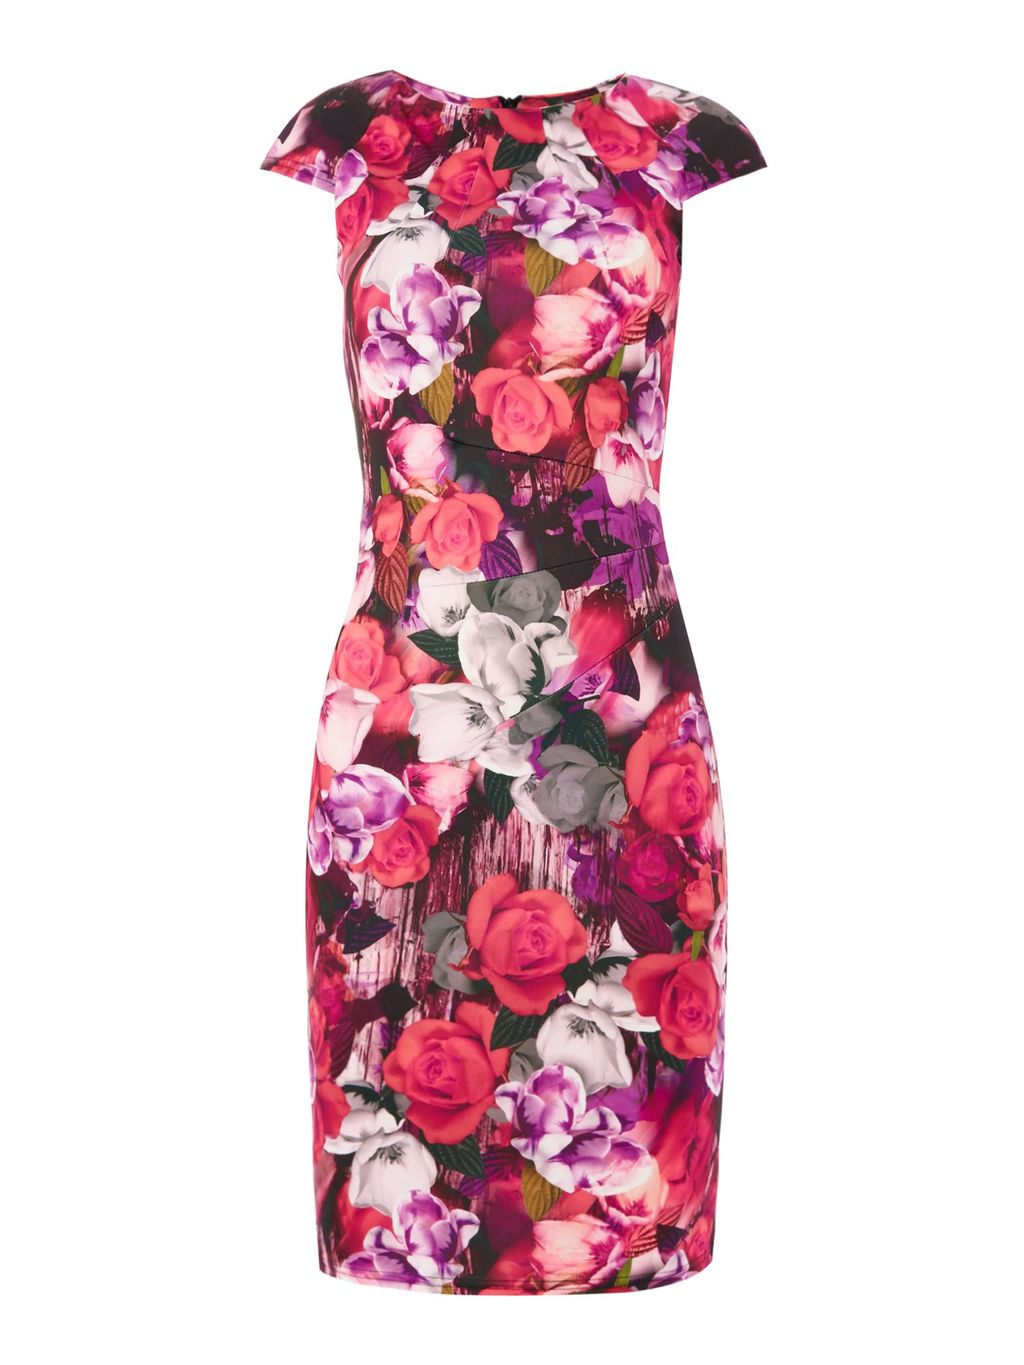 Cap Sleeve Round Neck Floral Bodycon Dress, Multi Coloured - style: shift; sleeve style: capped; fit: tailored/fitted; secondary colour: white; predominant colour: hot pink; length: on the knee; fibres: polyester/polyamide - stretch; occasions: occasion; neckline: crew; sleeve length: short sleeve; pattern type: fabric; pattern: florals; texture group: other - light to midweight; season: s/s 2016